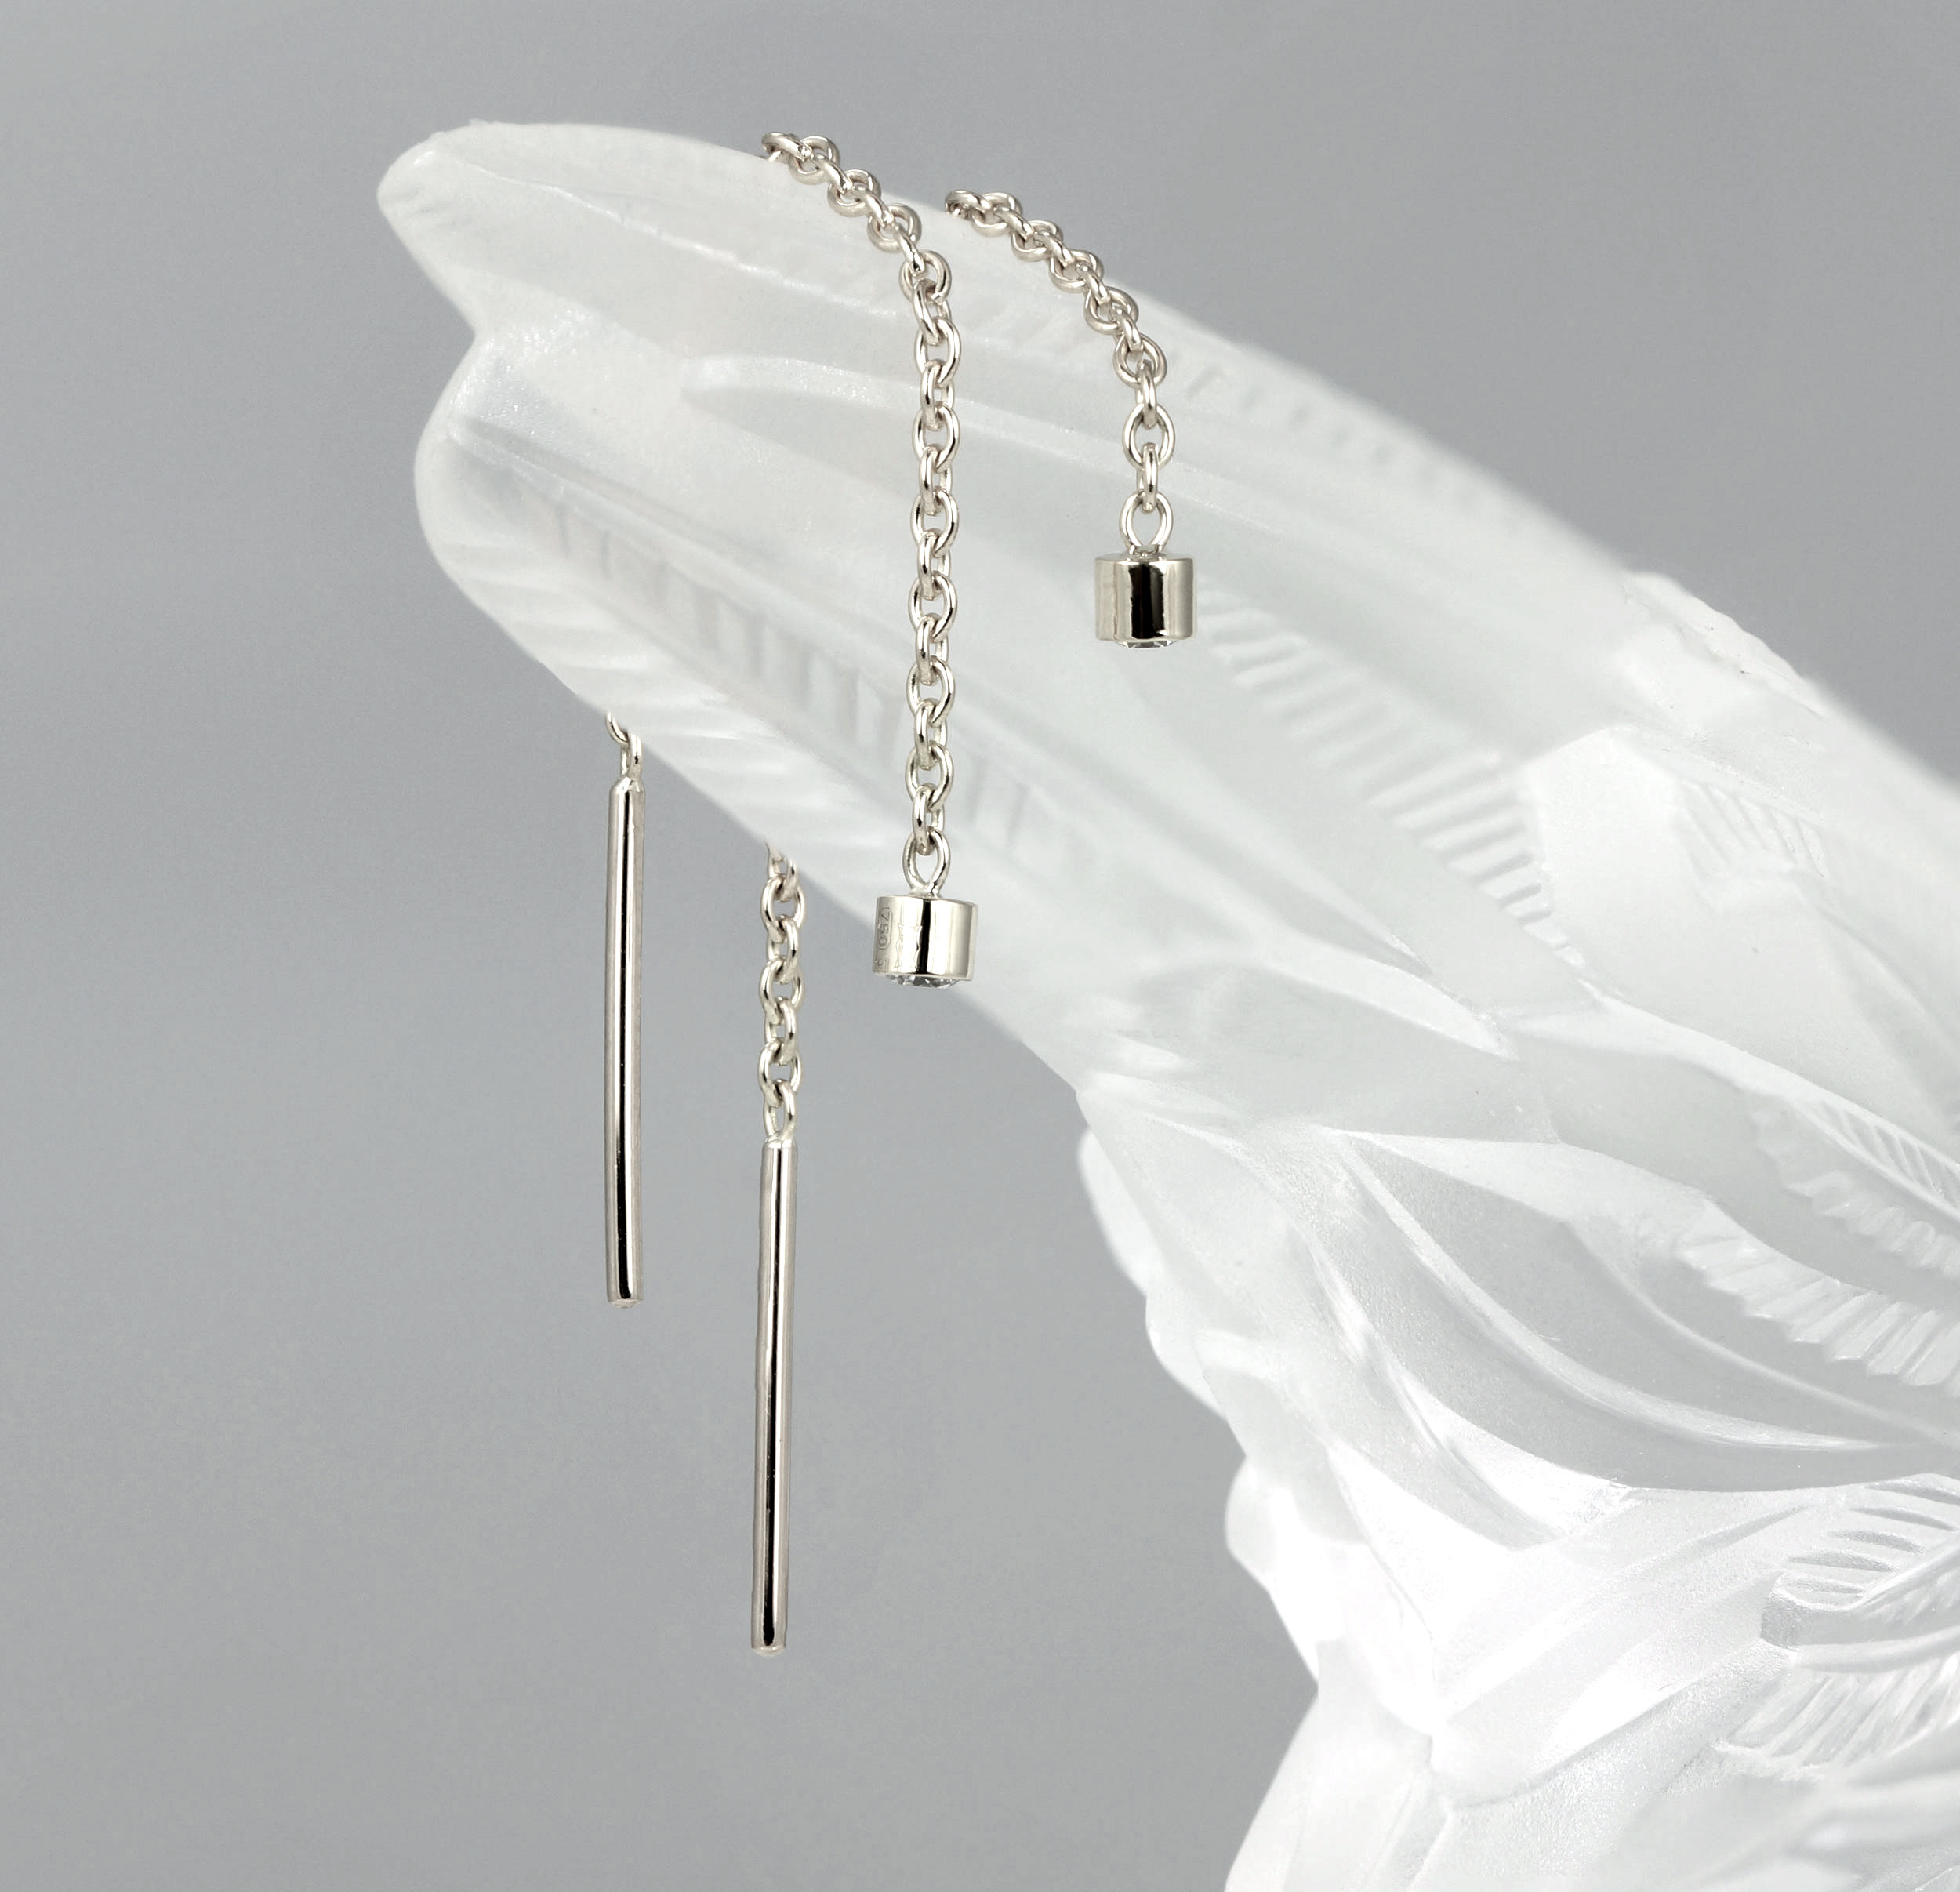 gold-threader-earrings-thread-the-metal-through-your-ear-so-that-it-falls-down-the-back-of-your-lobe-lena-cohen-fine-jewellery